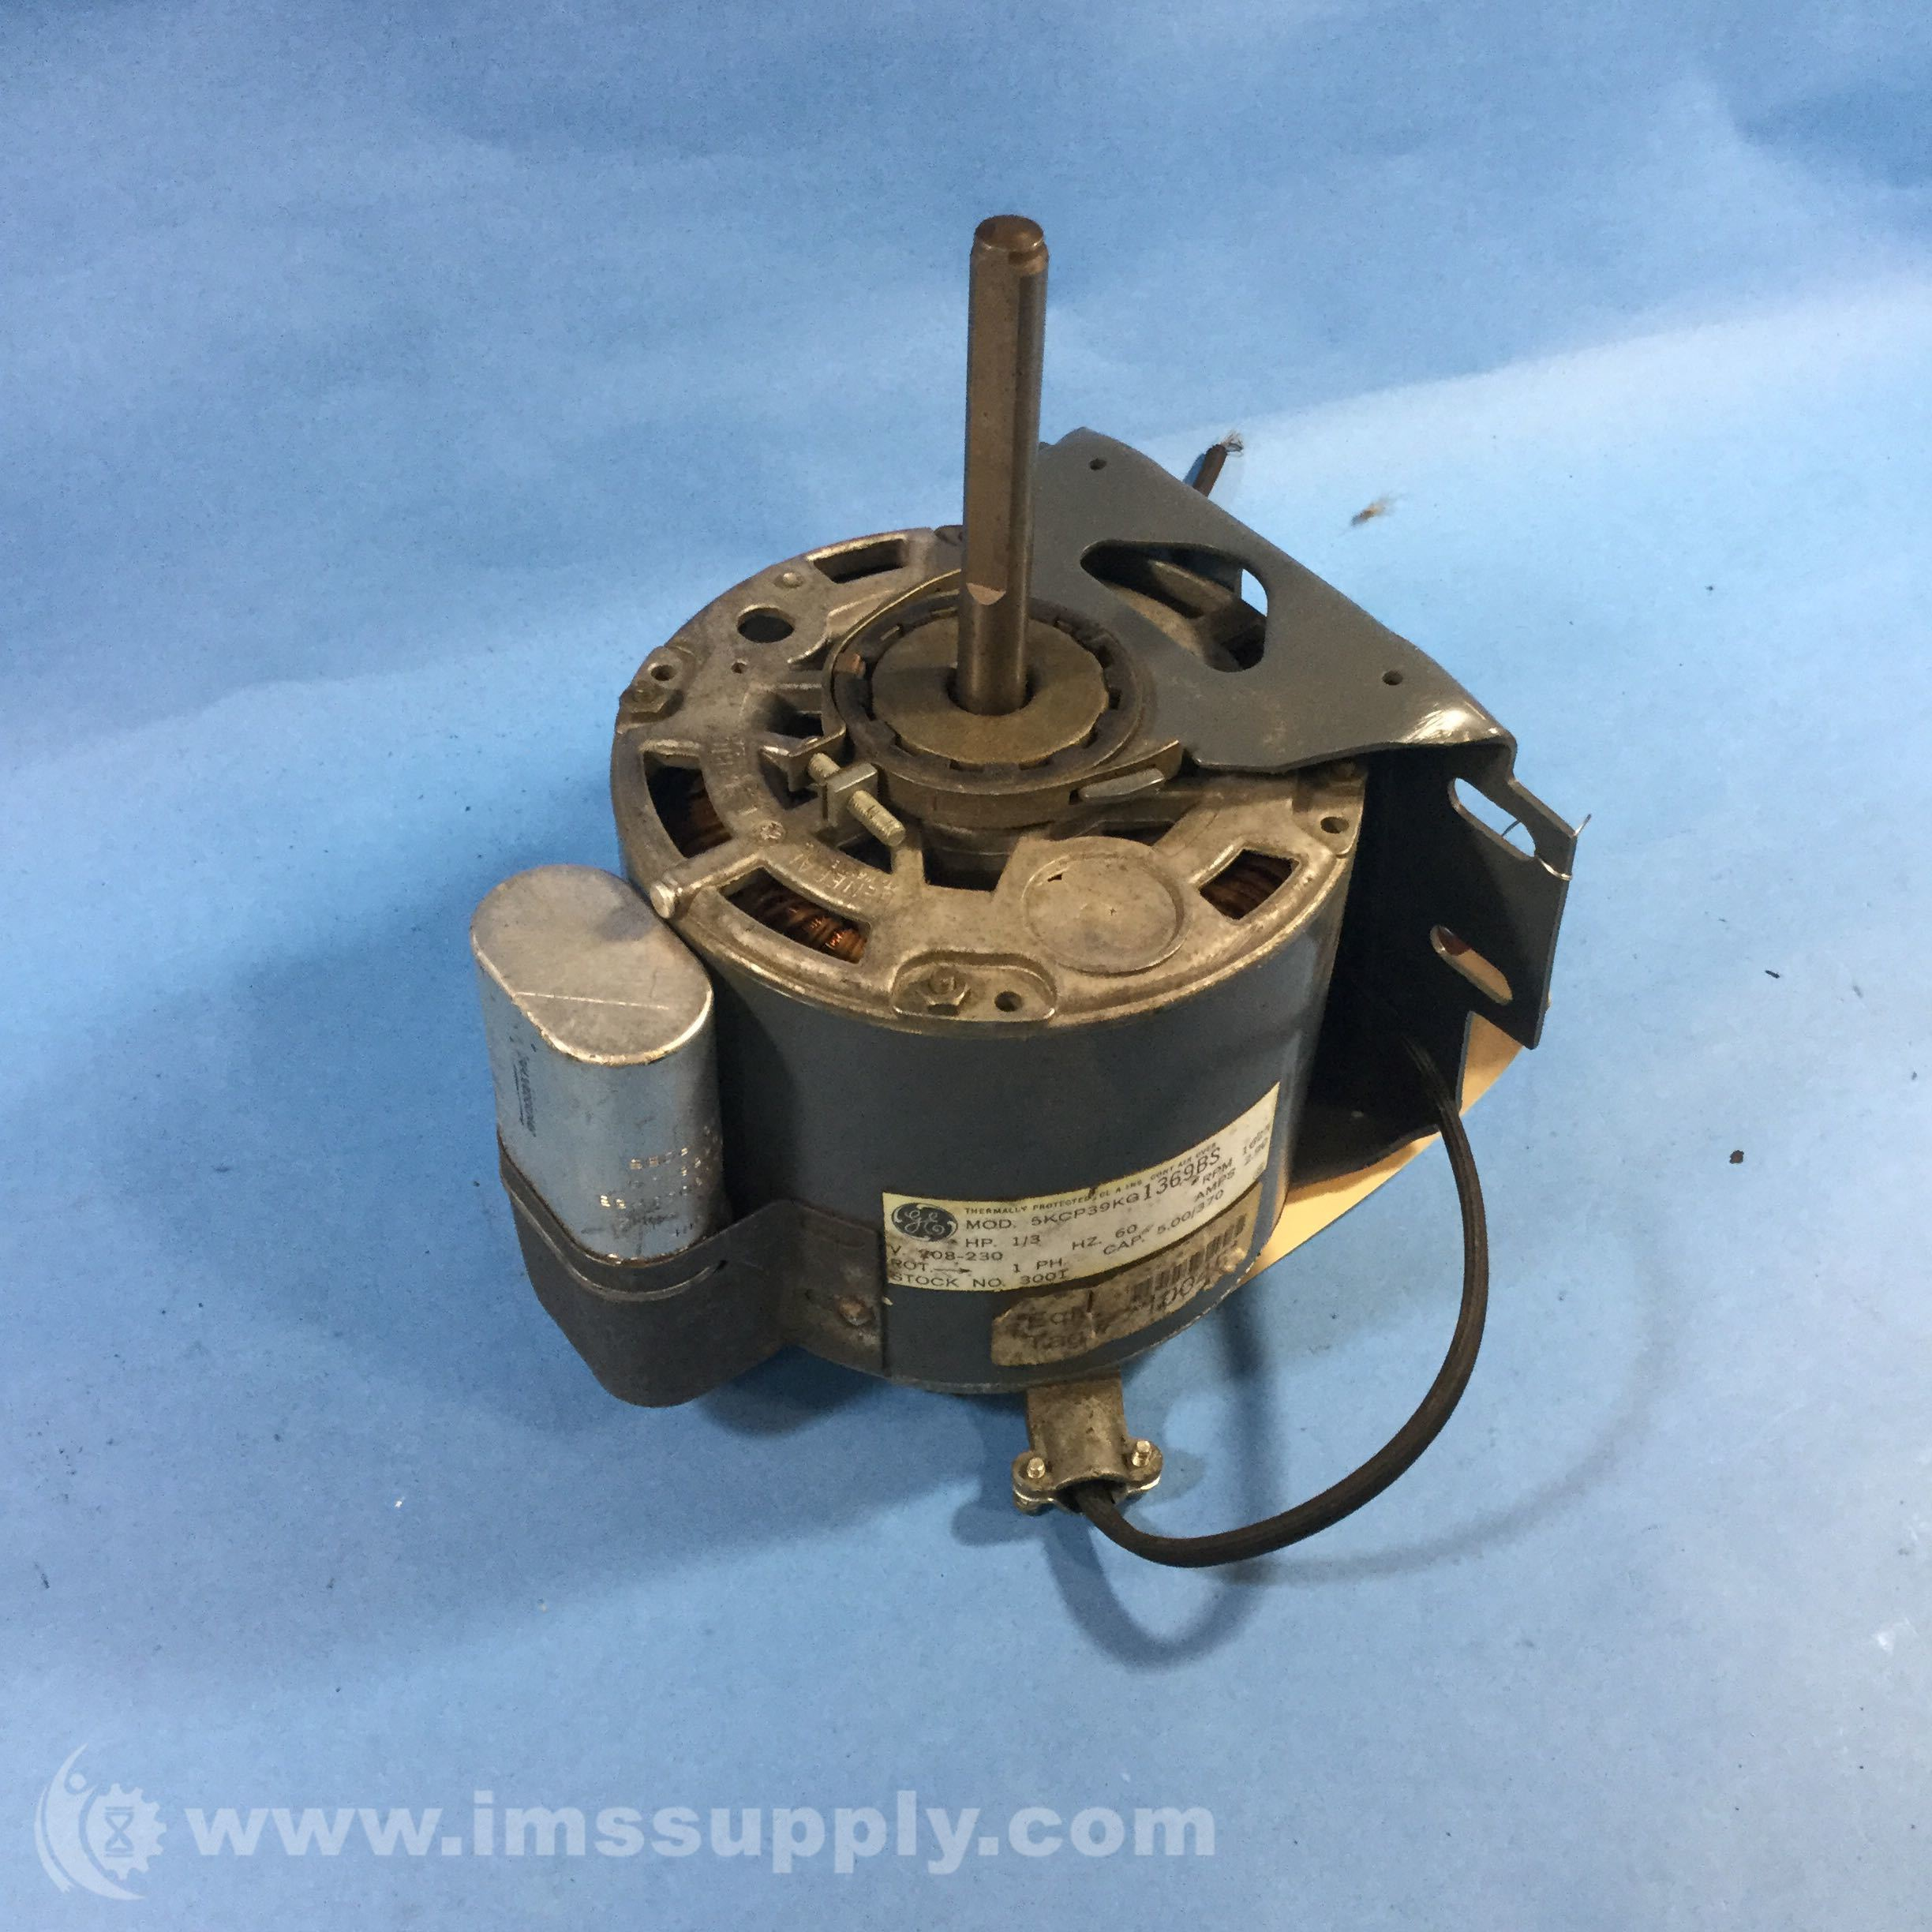 Ge motors 5kcp39kg electric motor ims supply for Ge electric motors catalog